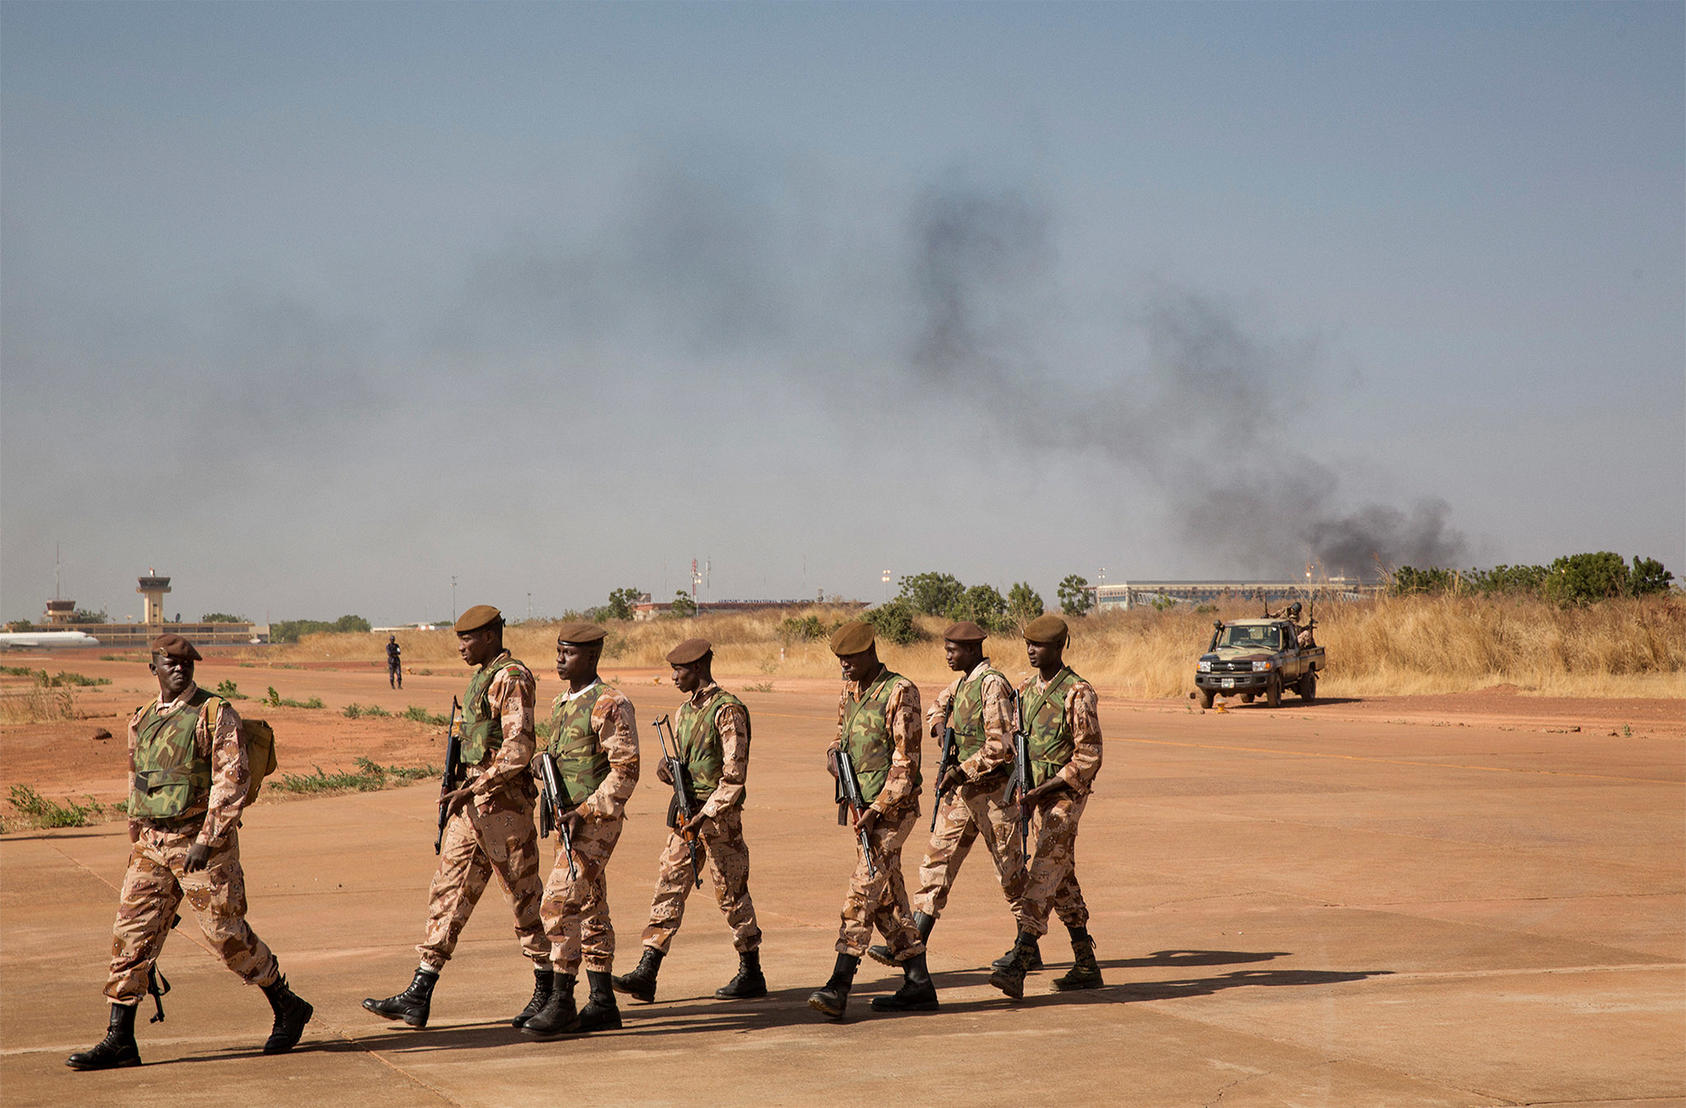 Malian soldiers patrol an airbase in Bamako, Mali, Jan. 16, 2013. (Marco Gualazzini/The New York Times)